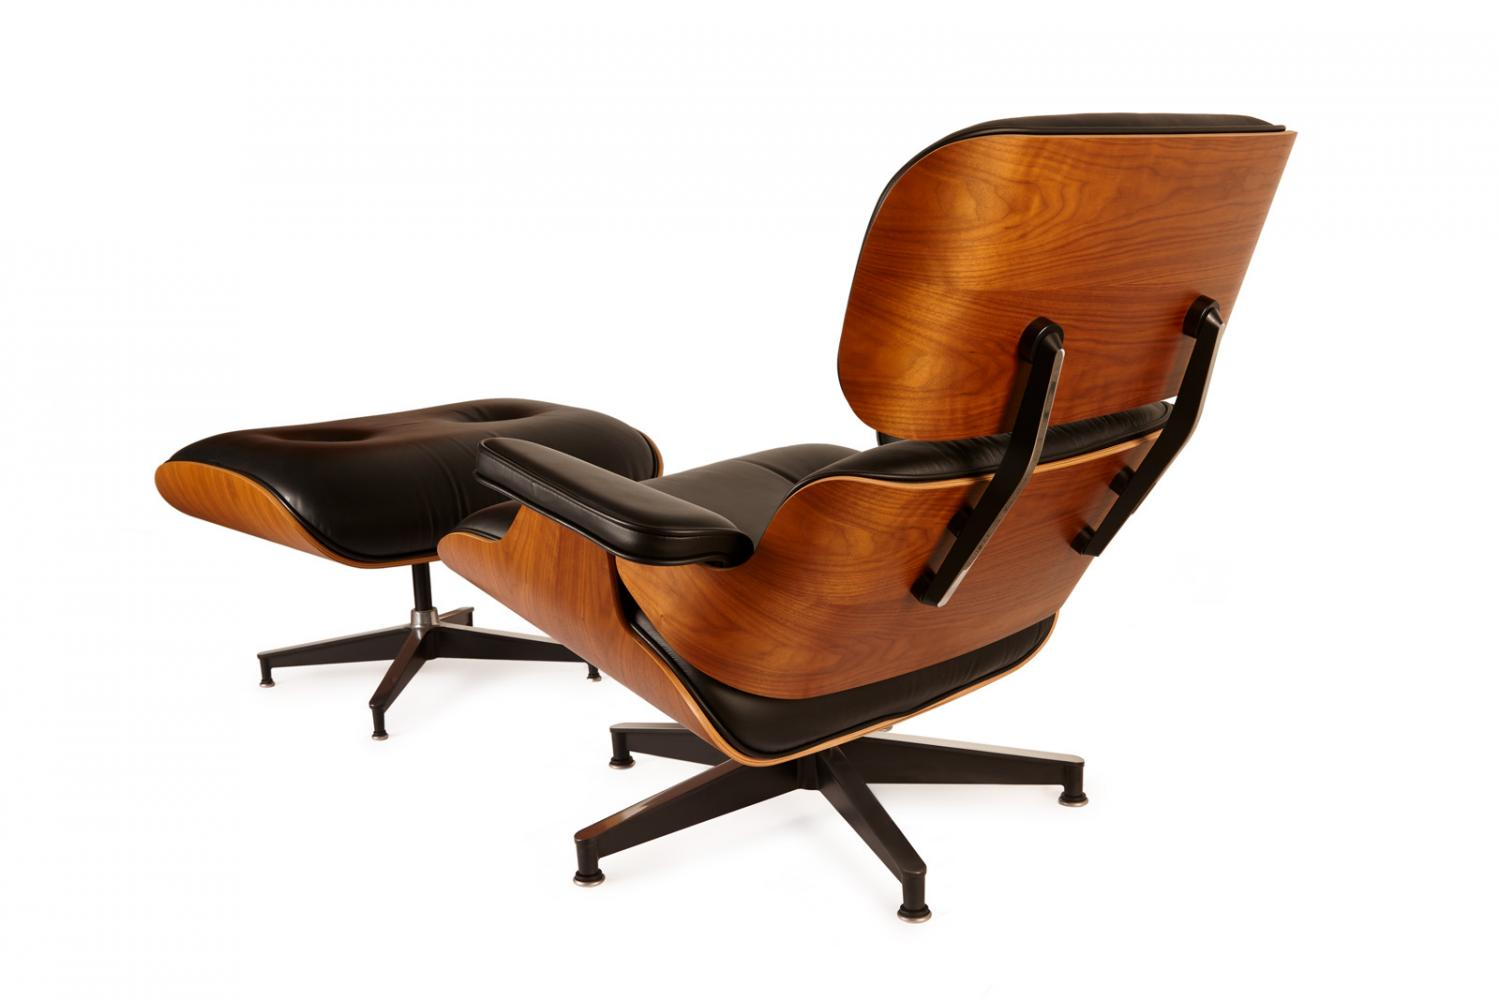 charles ray eames lounge chair and ottoman price estimate 4000